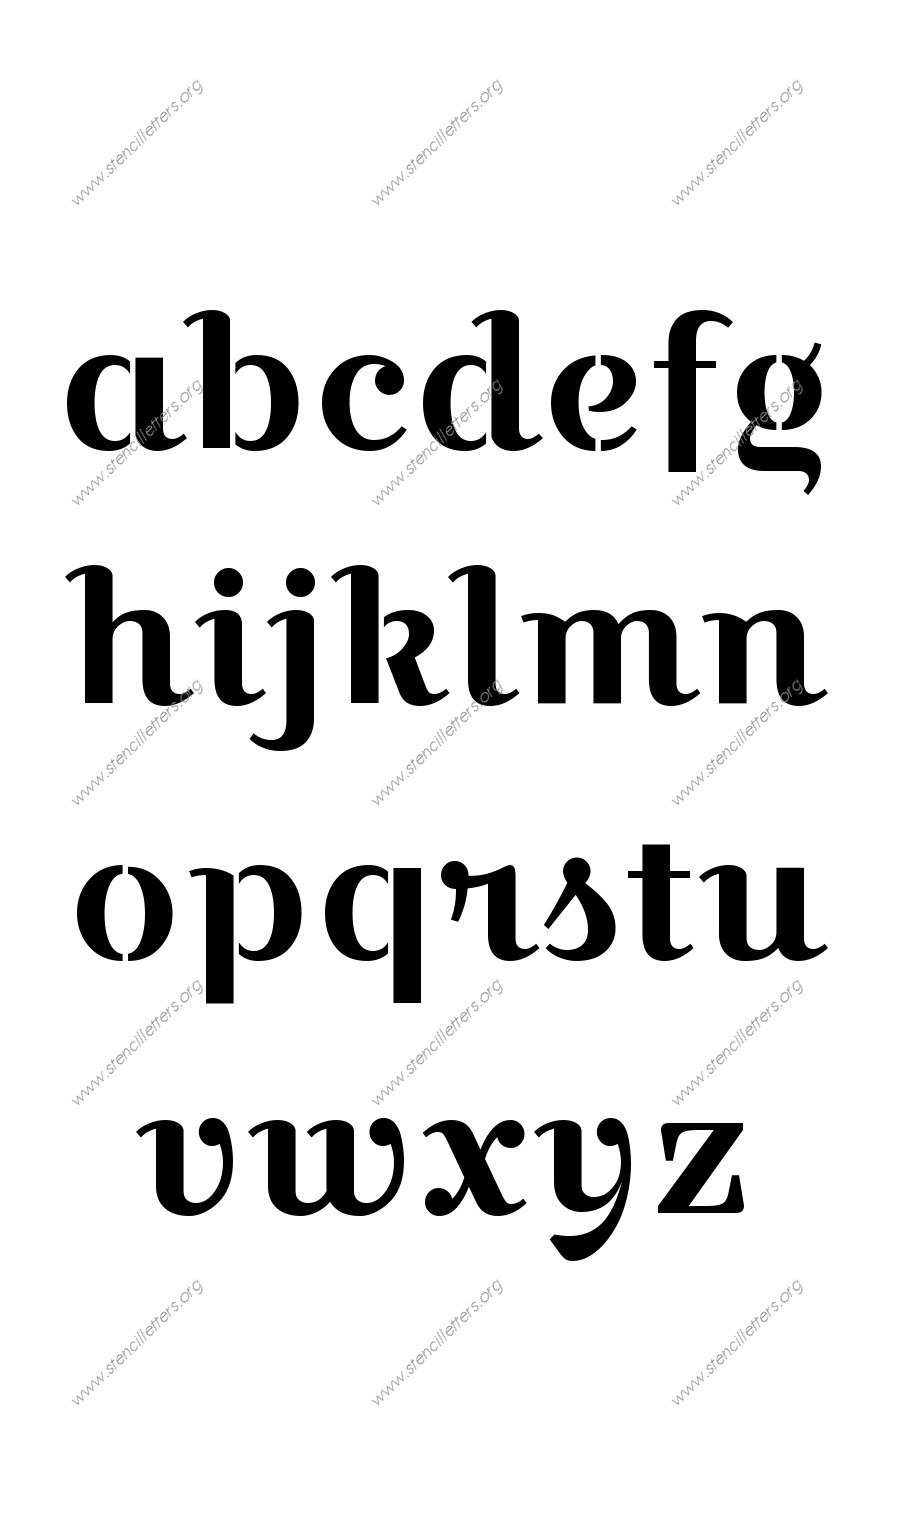 Wedding Script A to Z lowercase letter stencils